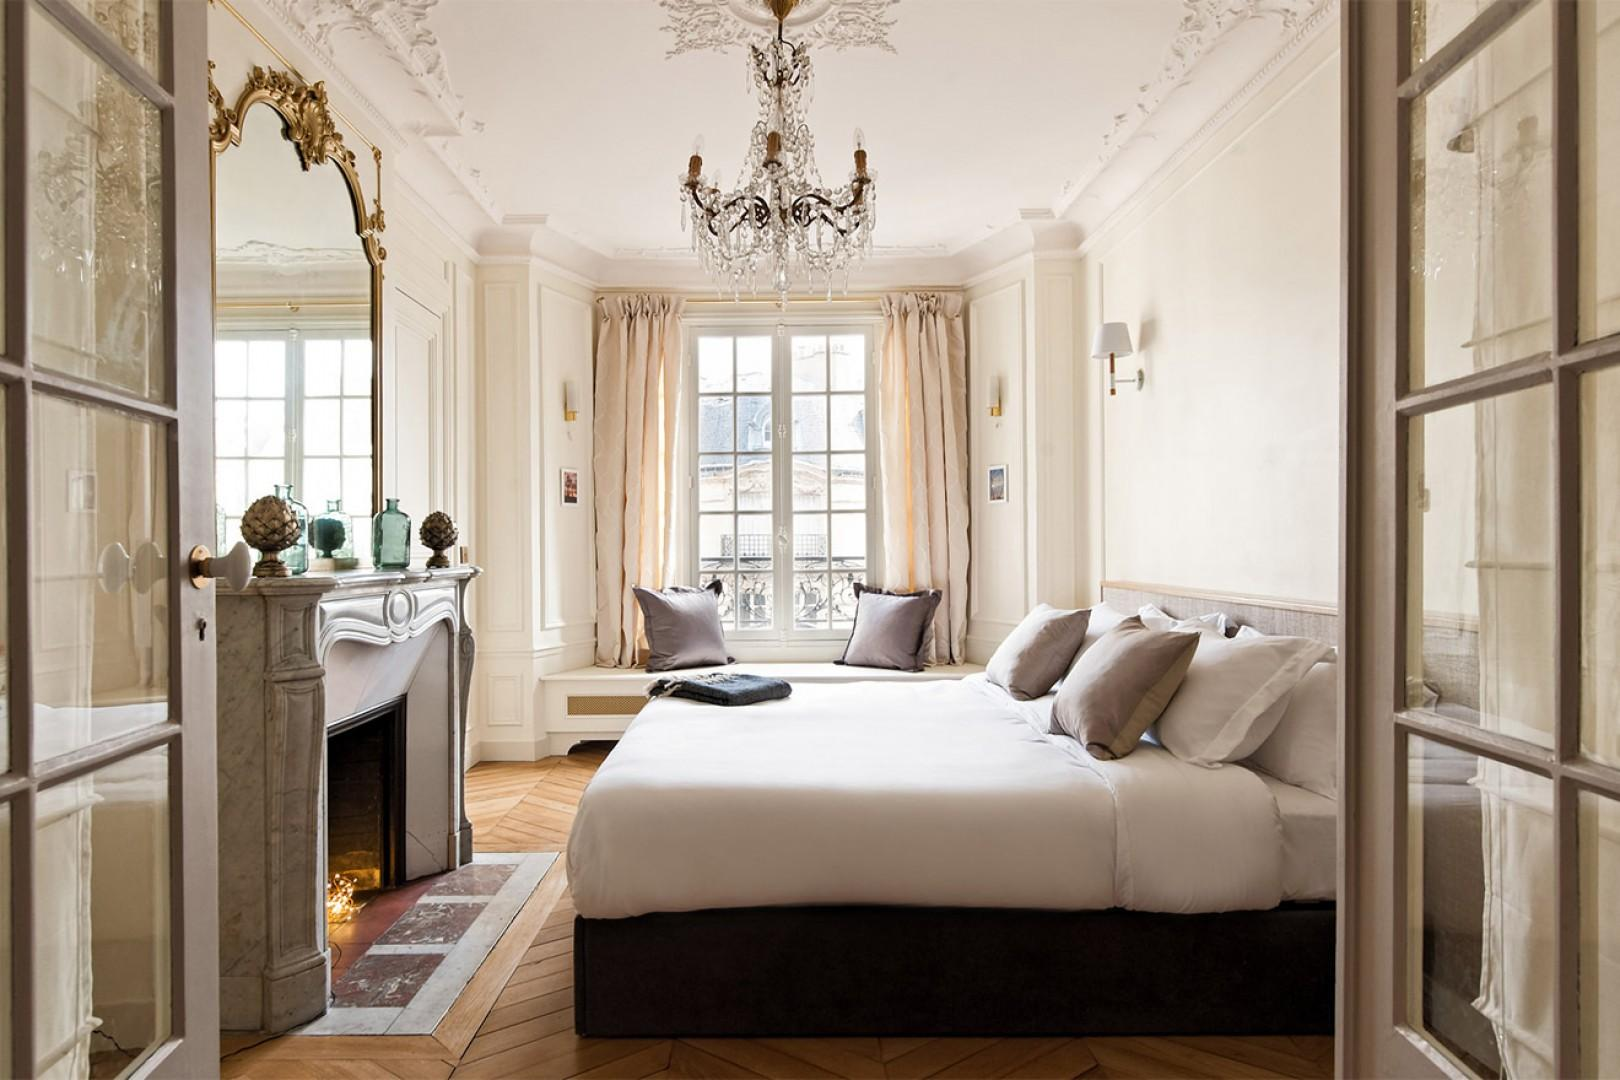 Large double doors open to reveal the stunning bedroom 2.